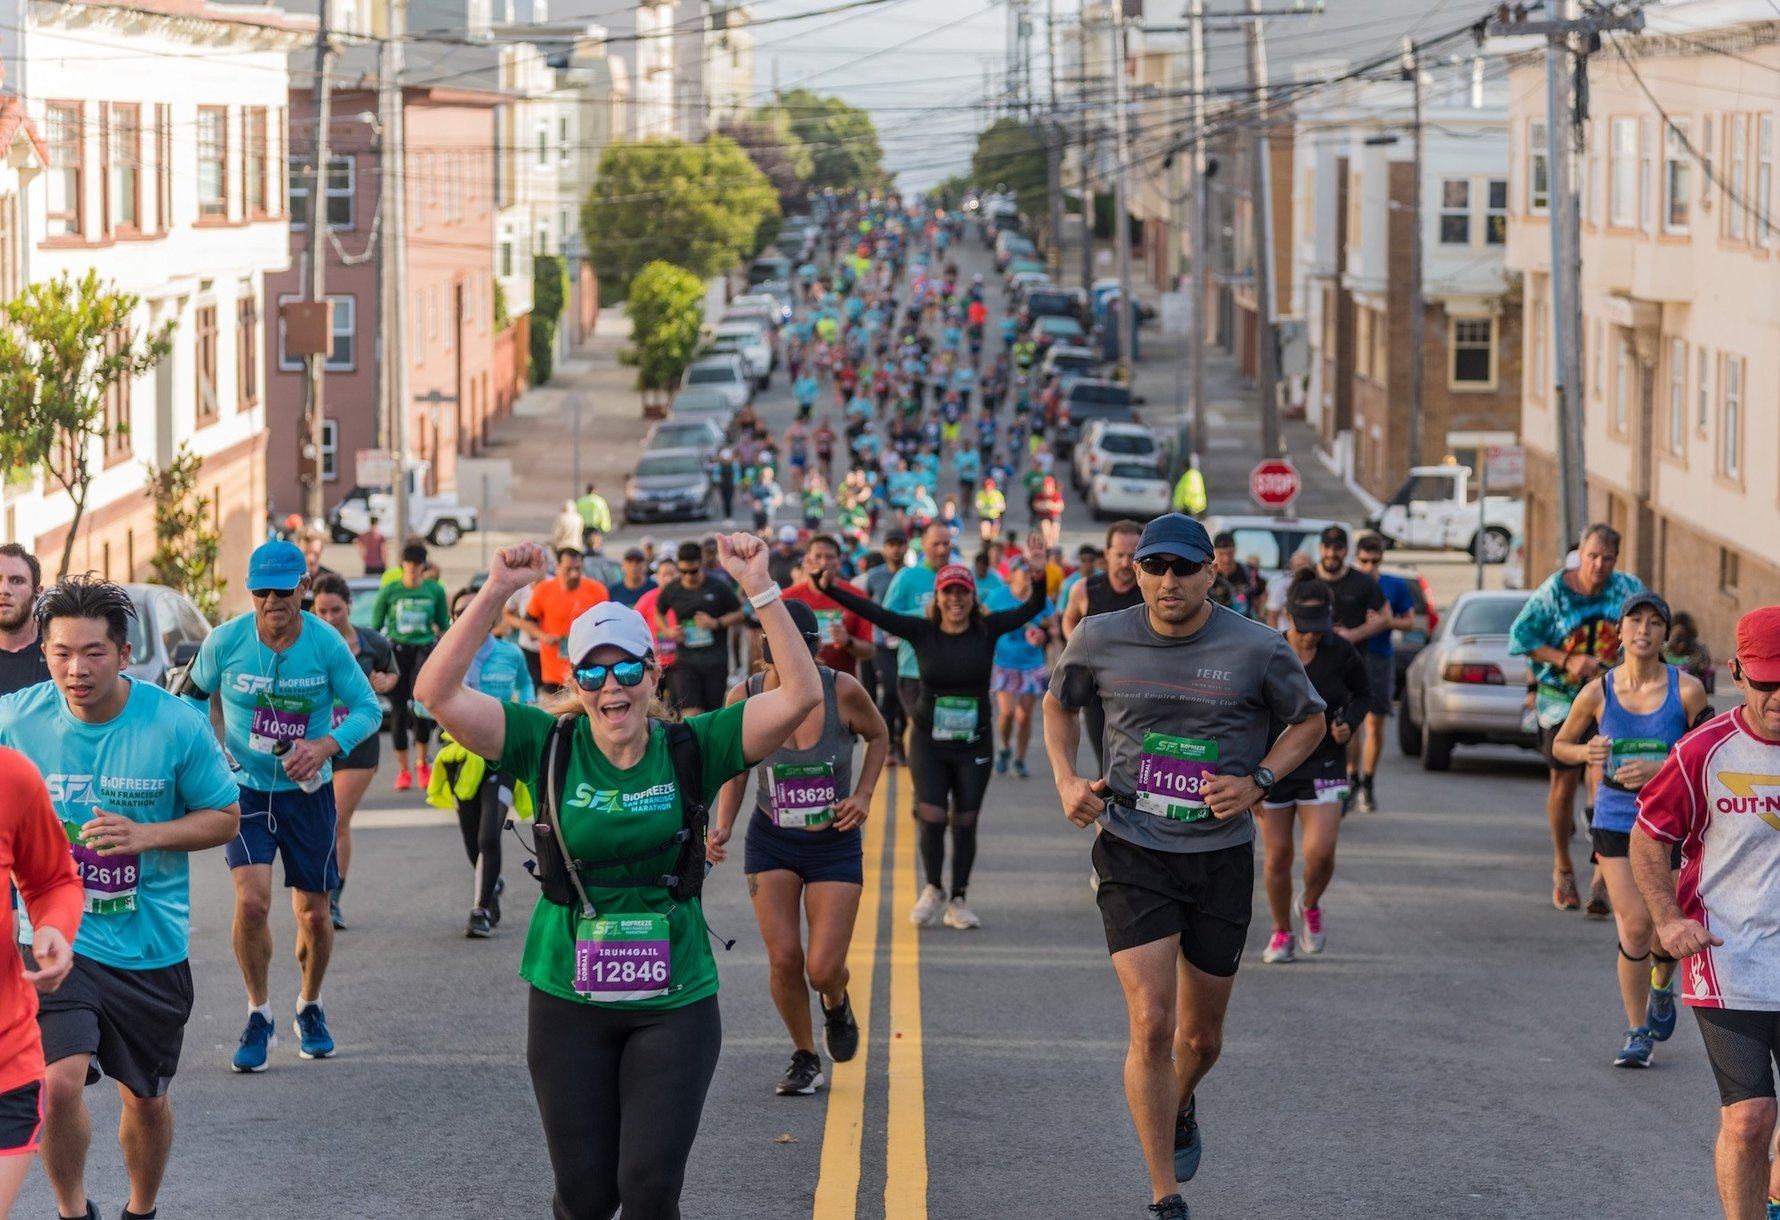 Virtual Marathon San Francisco - The San Francisco Marathon Virtual365 Tracking App (a mouthful, best just refer to it as the SFMV365 app, save that breath for the running) allows budding marathon runners across the world to take part in their own city, in their own country, in their own time zone, bridging the gap between runners in these times of social distancing, lockdowns and uncertainty. A variety of leaderboards on the app allow you to test your times against runners in your city, country, continent, age-group and more, giving real meaning to the tagline; run globally, compete locally. It isn't all just about running for running's sake either, as those posting the best times could find themselves in the running for a slot upgrade at the eventual in-person San Francisco Marathon.